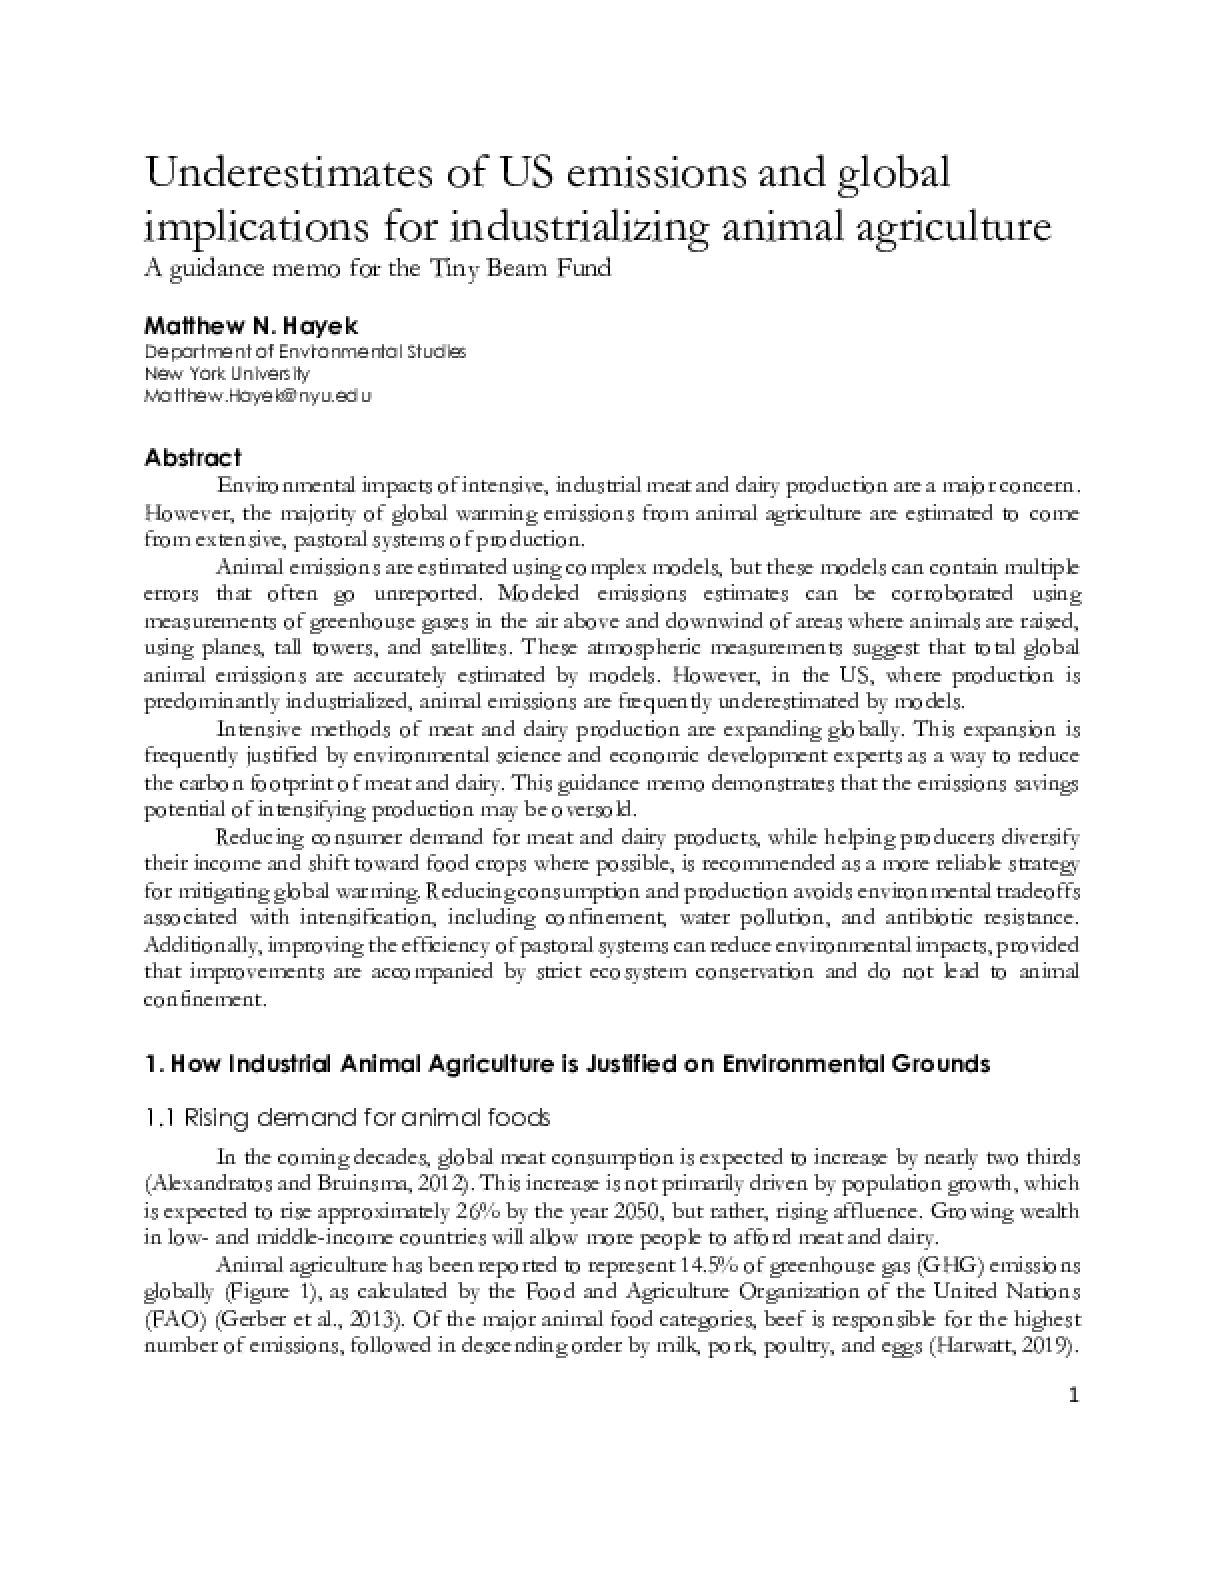 Underestimates of US emissions and global implications for industrializing animal agriculture